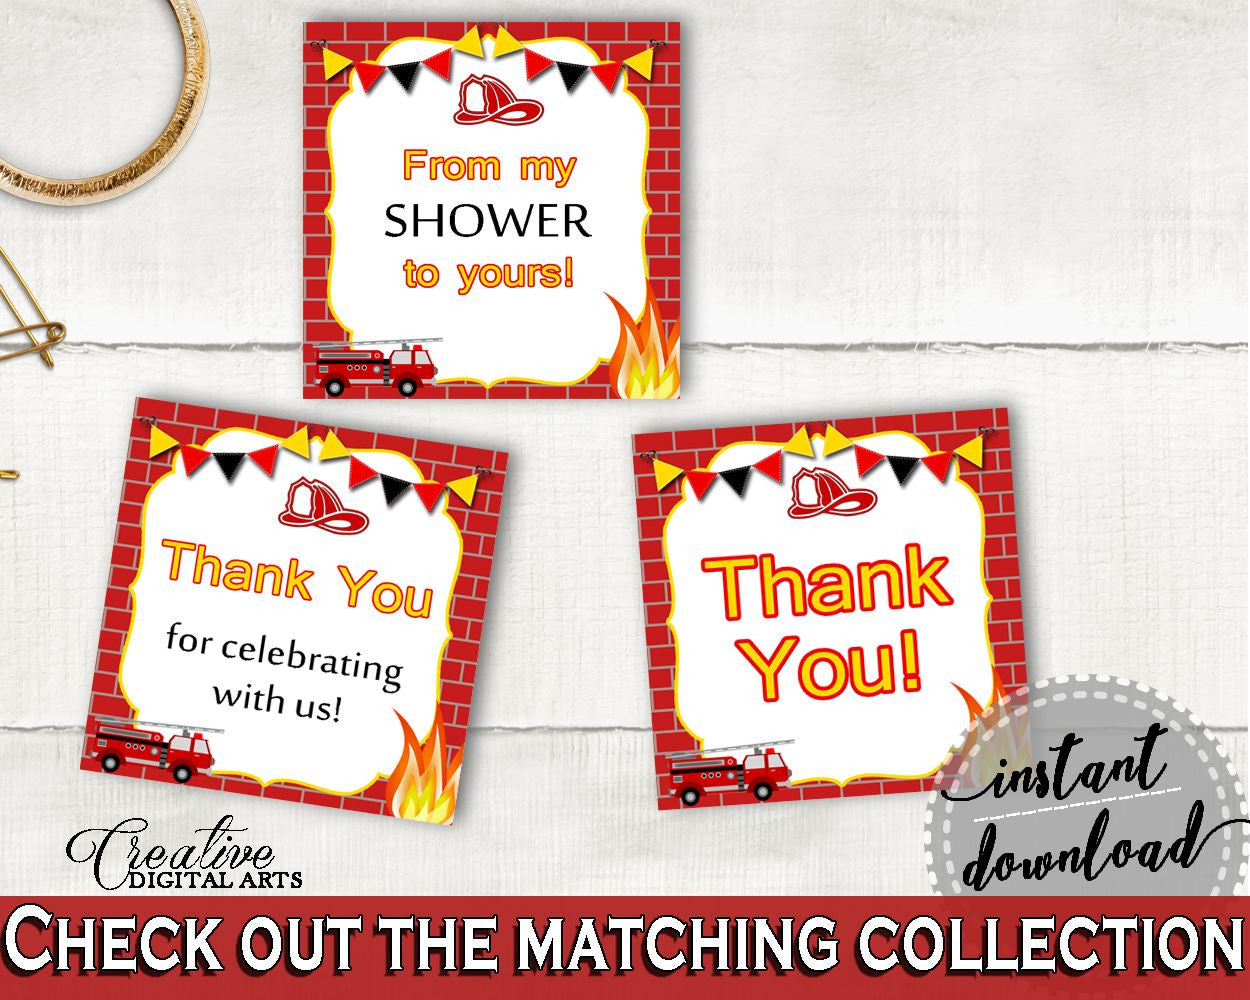 Square Tags Baby Shower Square Tags Fireman Baby Shower Square Tags Red Yellow Baby Shower Fireman Square Tags printable files - LUWX6 - Digital Product